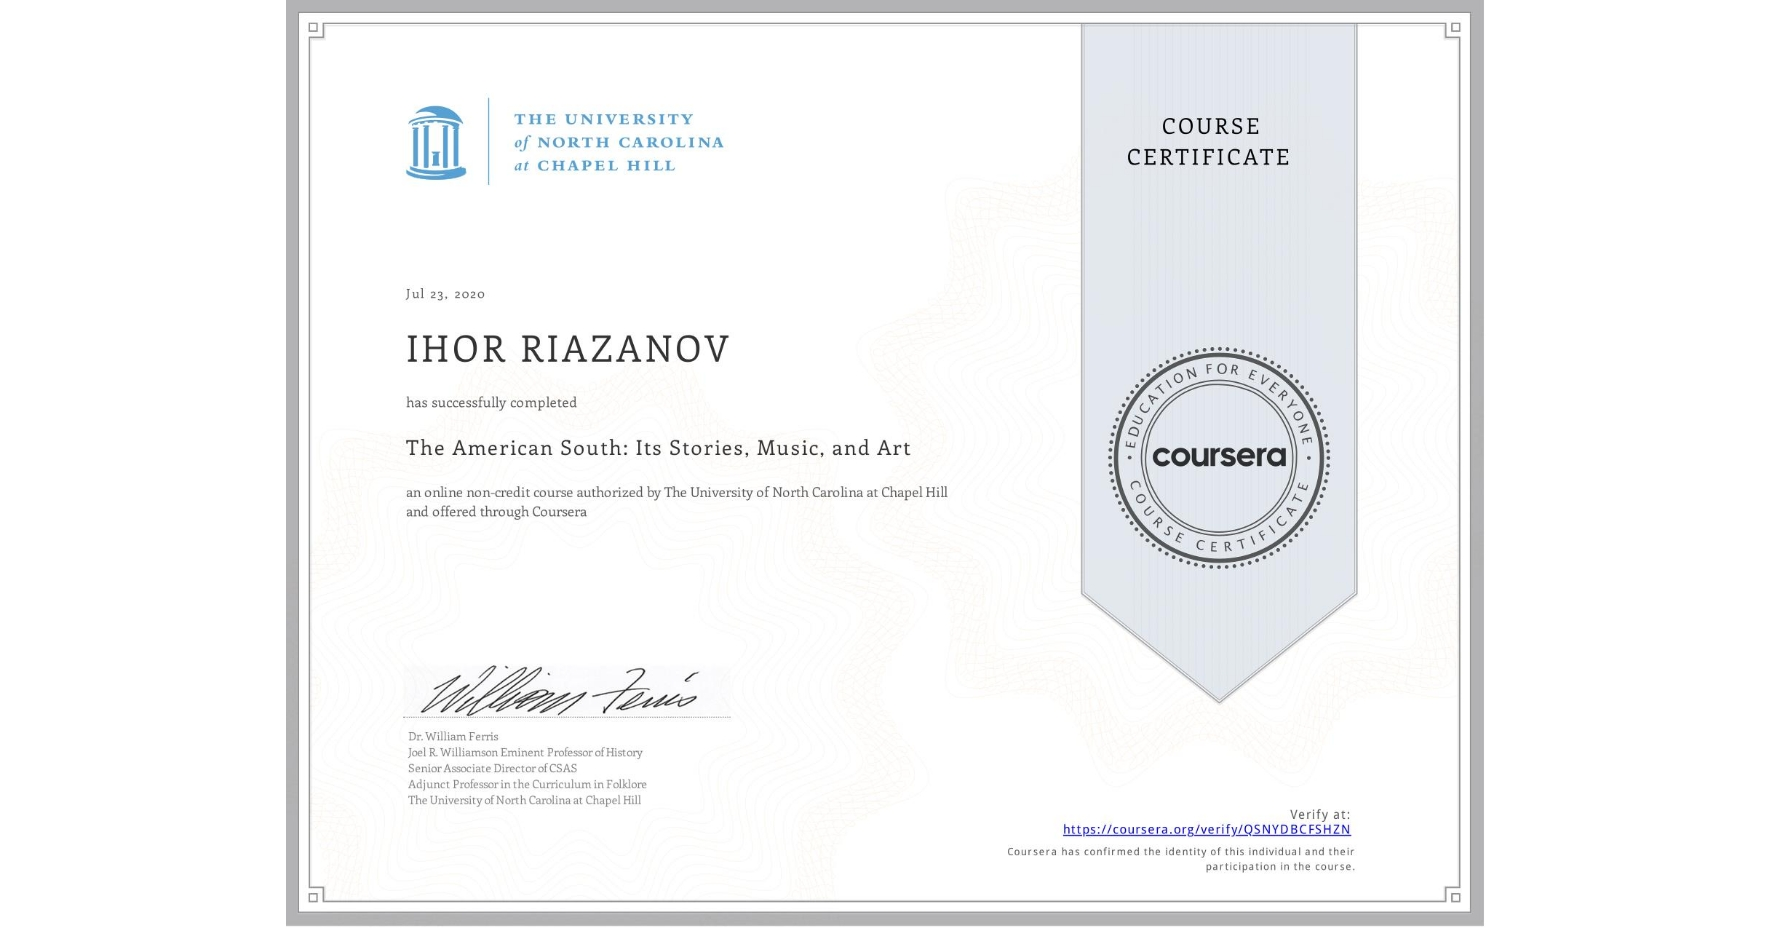 View certificate for IHOR RIAZANOV, The American South: Its Stories, Music, and Art, an online non-credit course authorized by The University of North Carolina at Chapel Hill and offered through Coursera